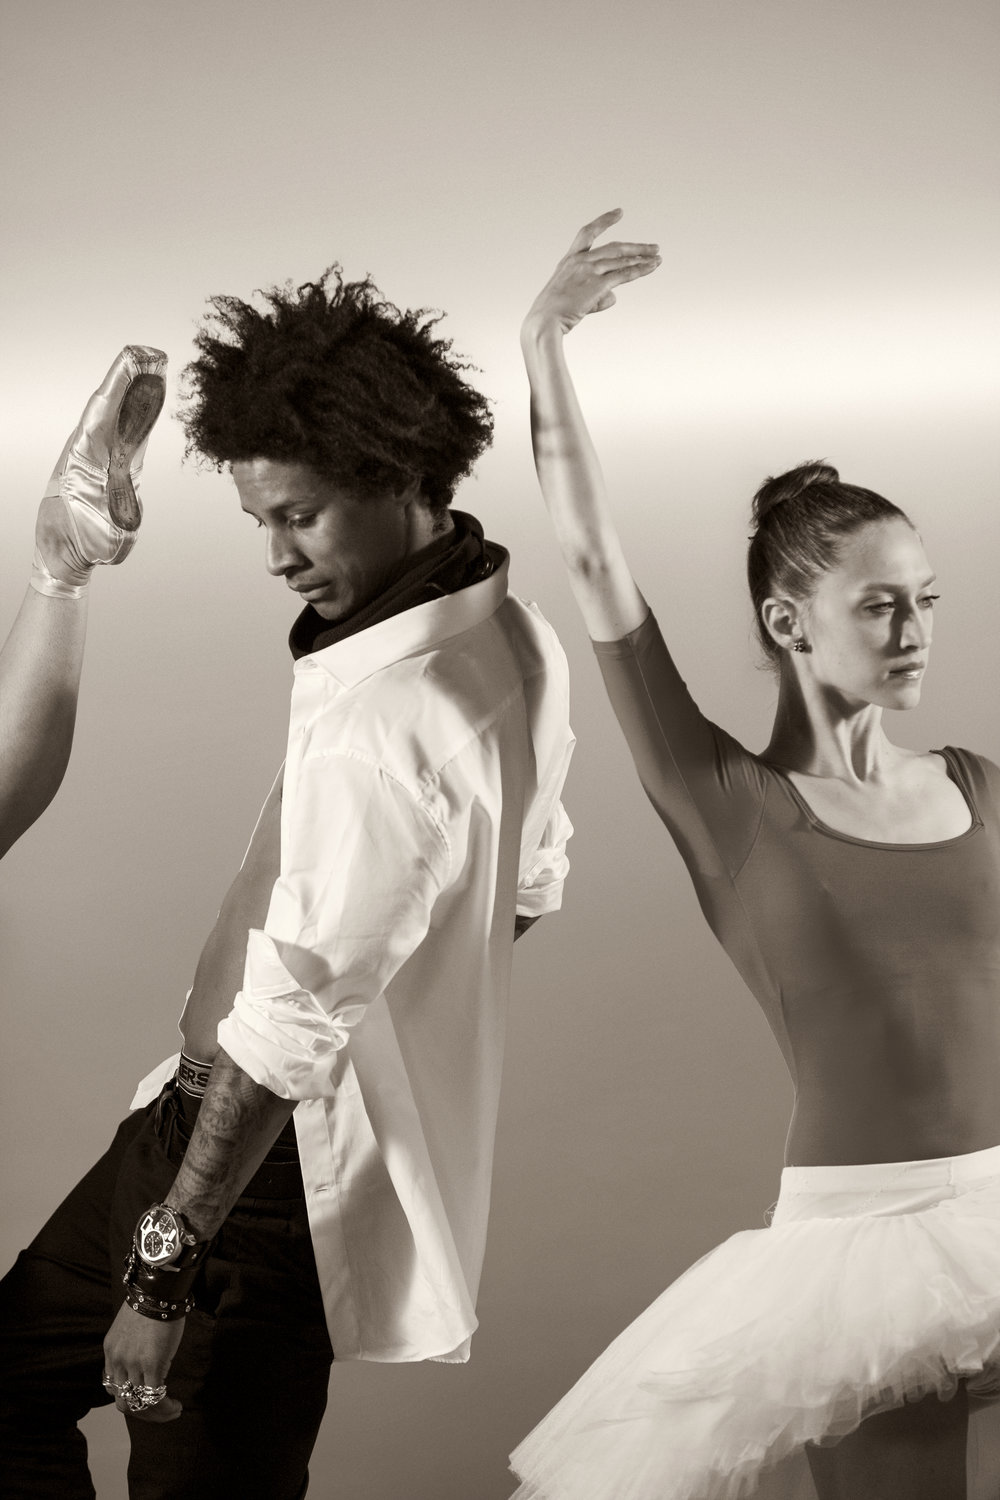 Les Twins Annex Vid Shoot Stills_K5V0204-B&W.jpg